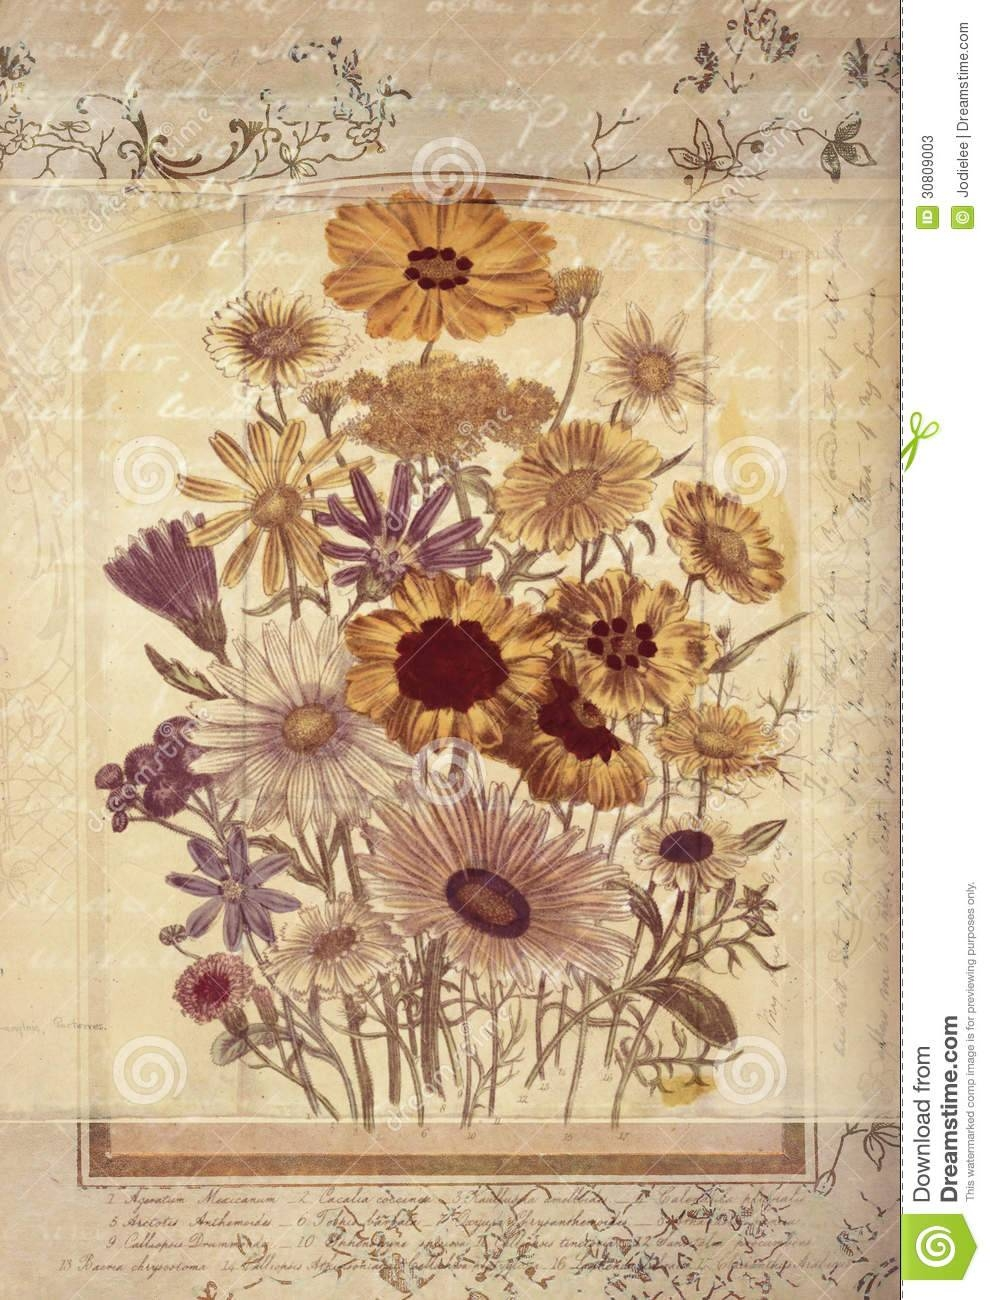 Flowers Botanical Vintage Style Wall Art With Textured Background Throughout Most Current Vintage Style Wall Art (View 3 of 20)